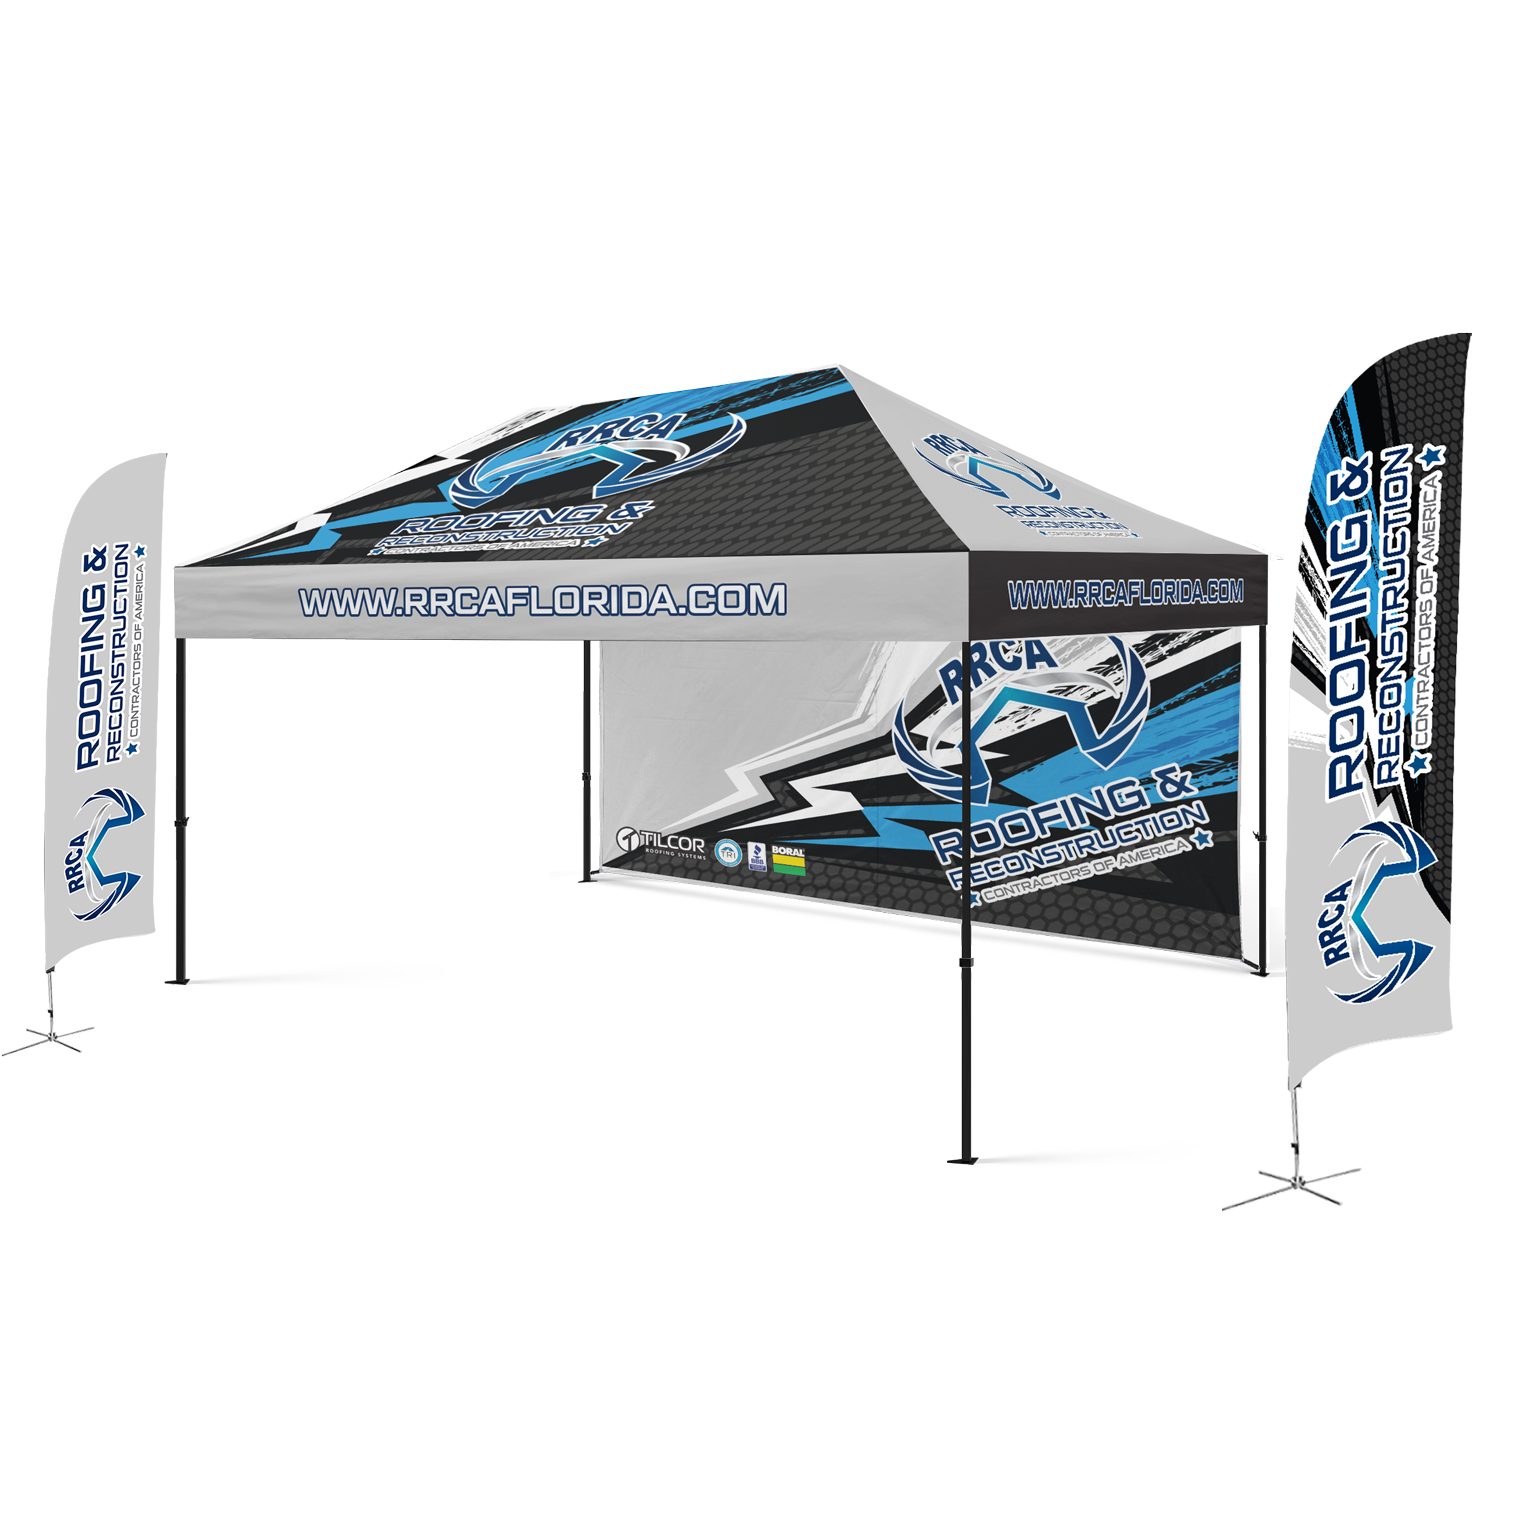 Banner & Booth Design